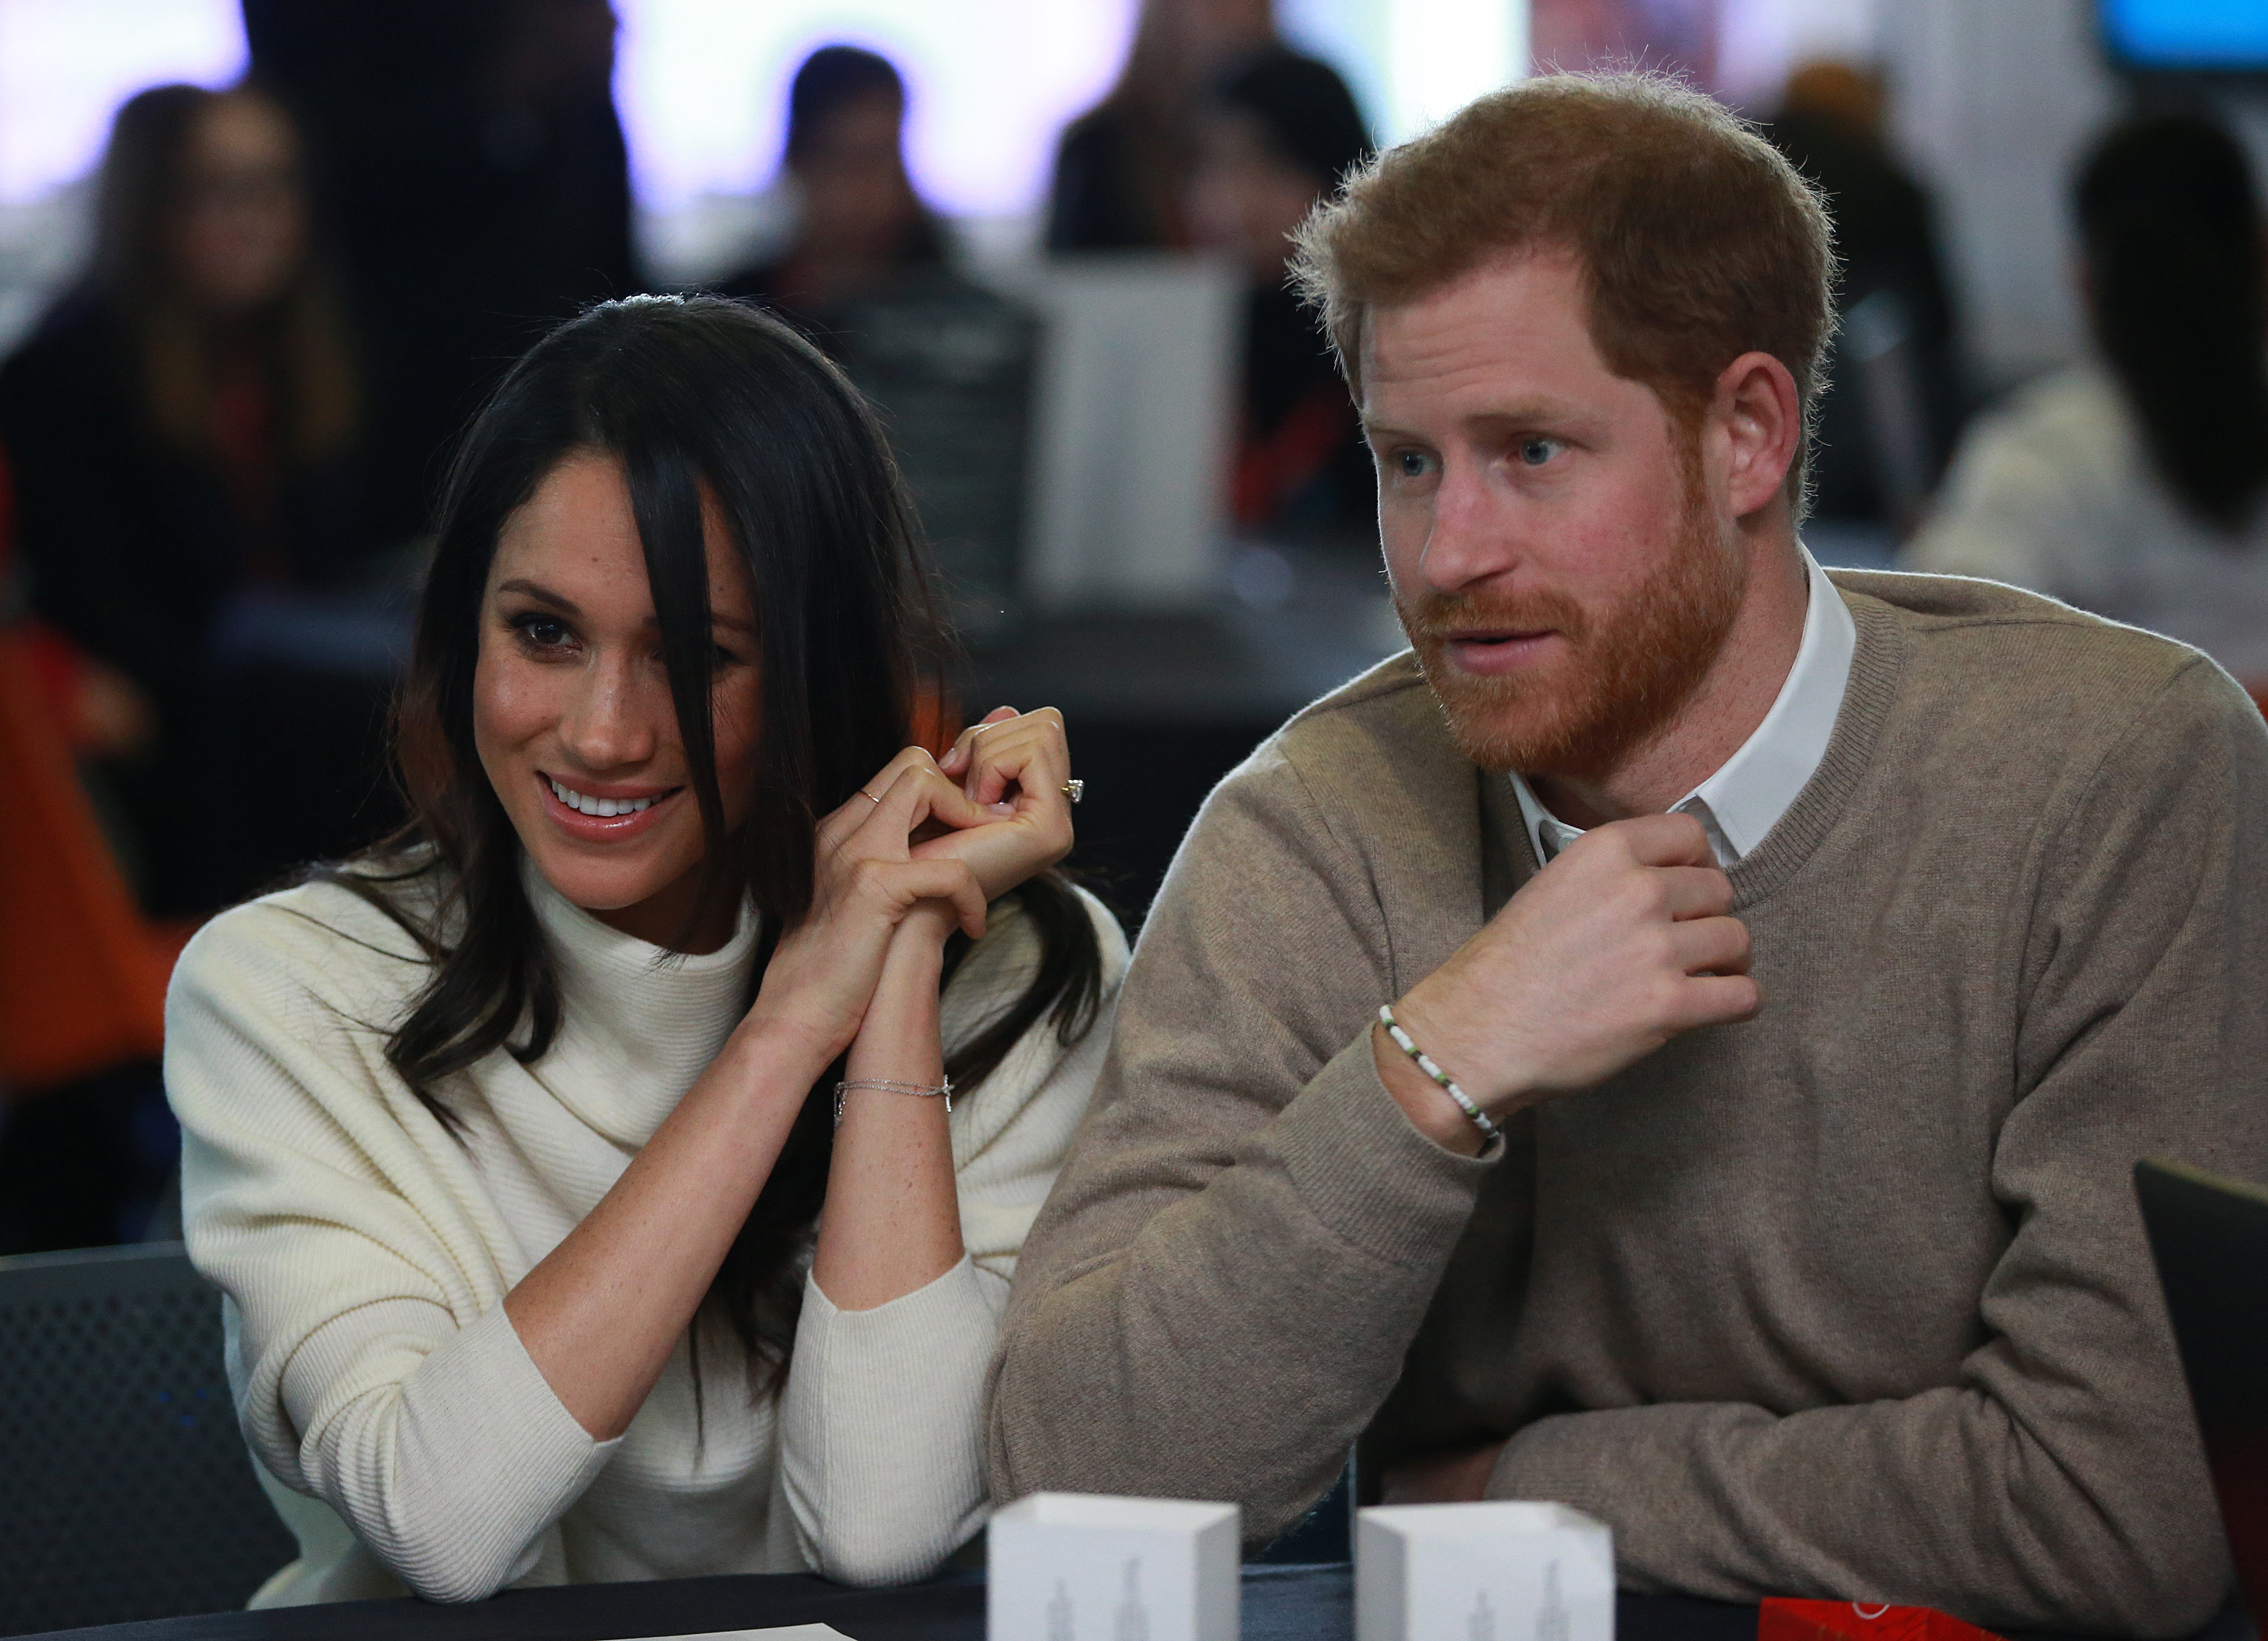 Prince Harry and Meghan Markle visit Millennium Point to celebrate International Women's Day on March 8, 2018 in Birmingham, England.